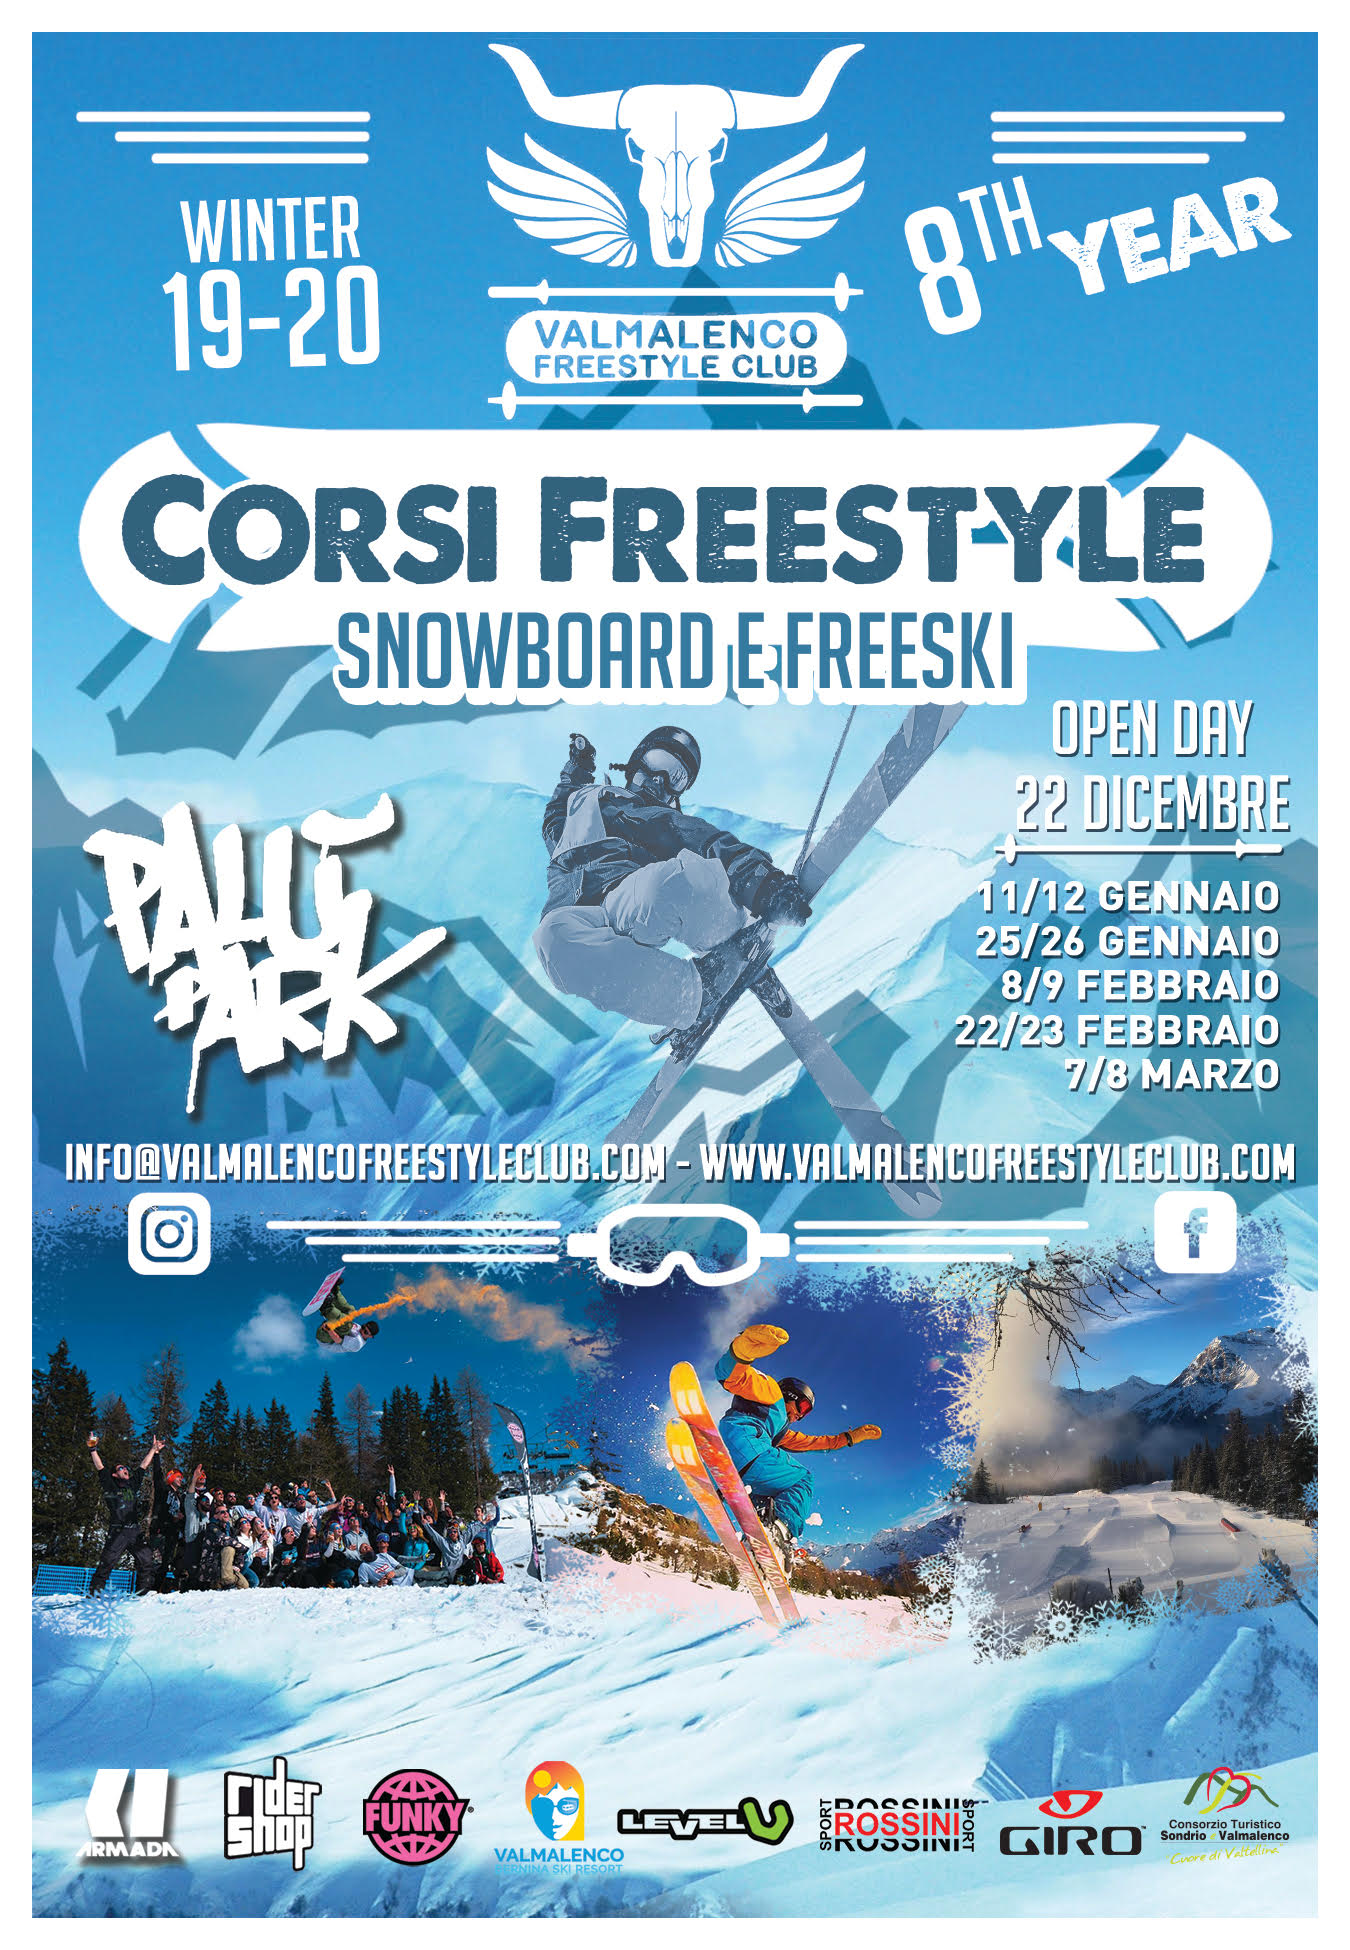 valmalenco freestyle club